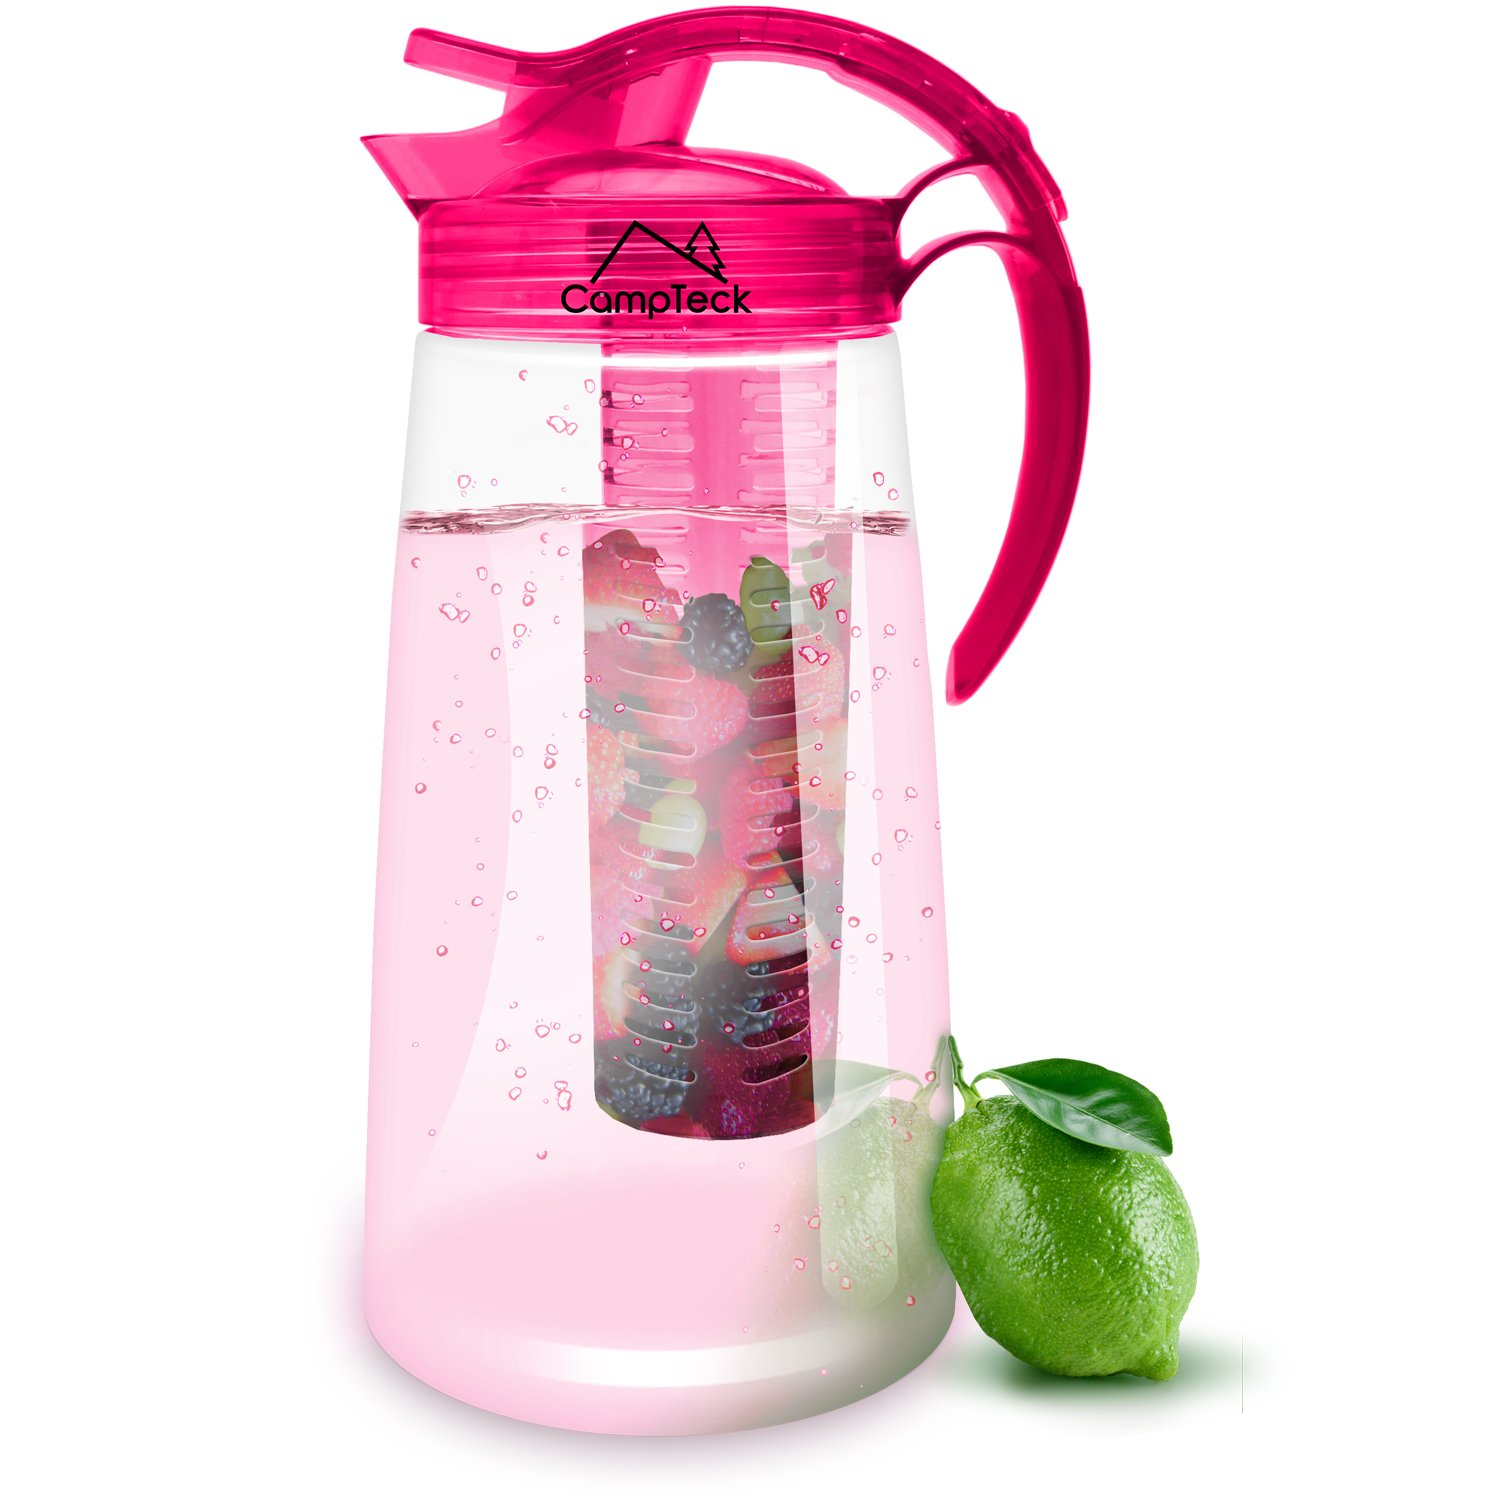 CampTeck 2 Litre 2000ml Fruit Infuser Water Jug Pitcher (BPA Free Tritan Plastic) with Leak Proof, Air Tight Lid + Lock & Handle - Pink HAZD080914